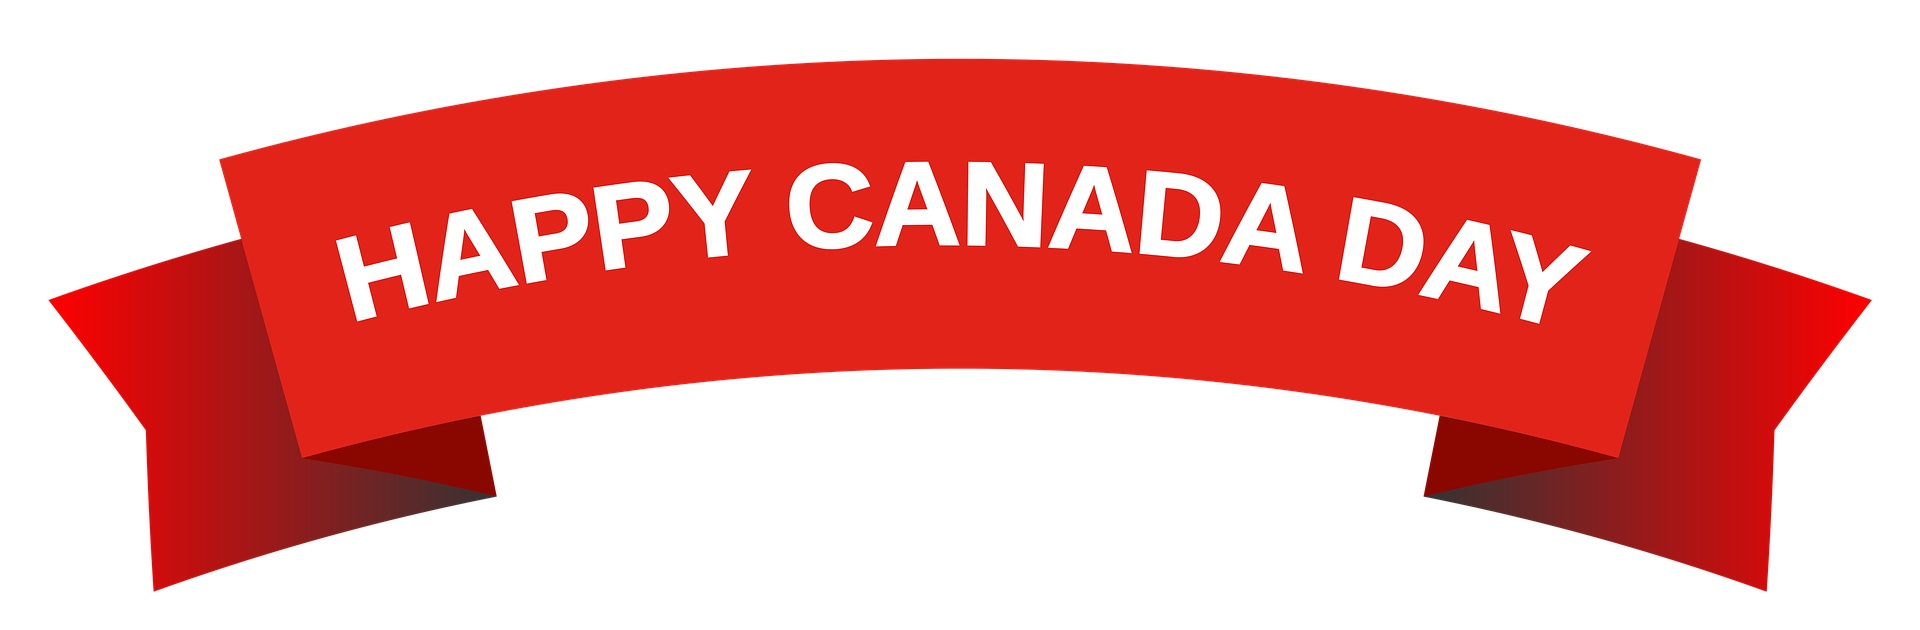 Canada Day, Canada Day Celebrate Our Health, O Canada, Happy Birthday Canada